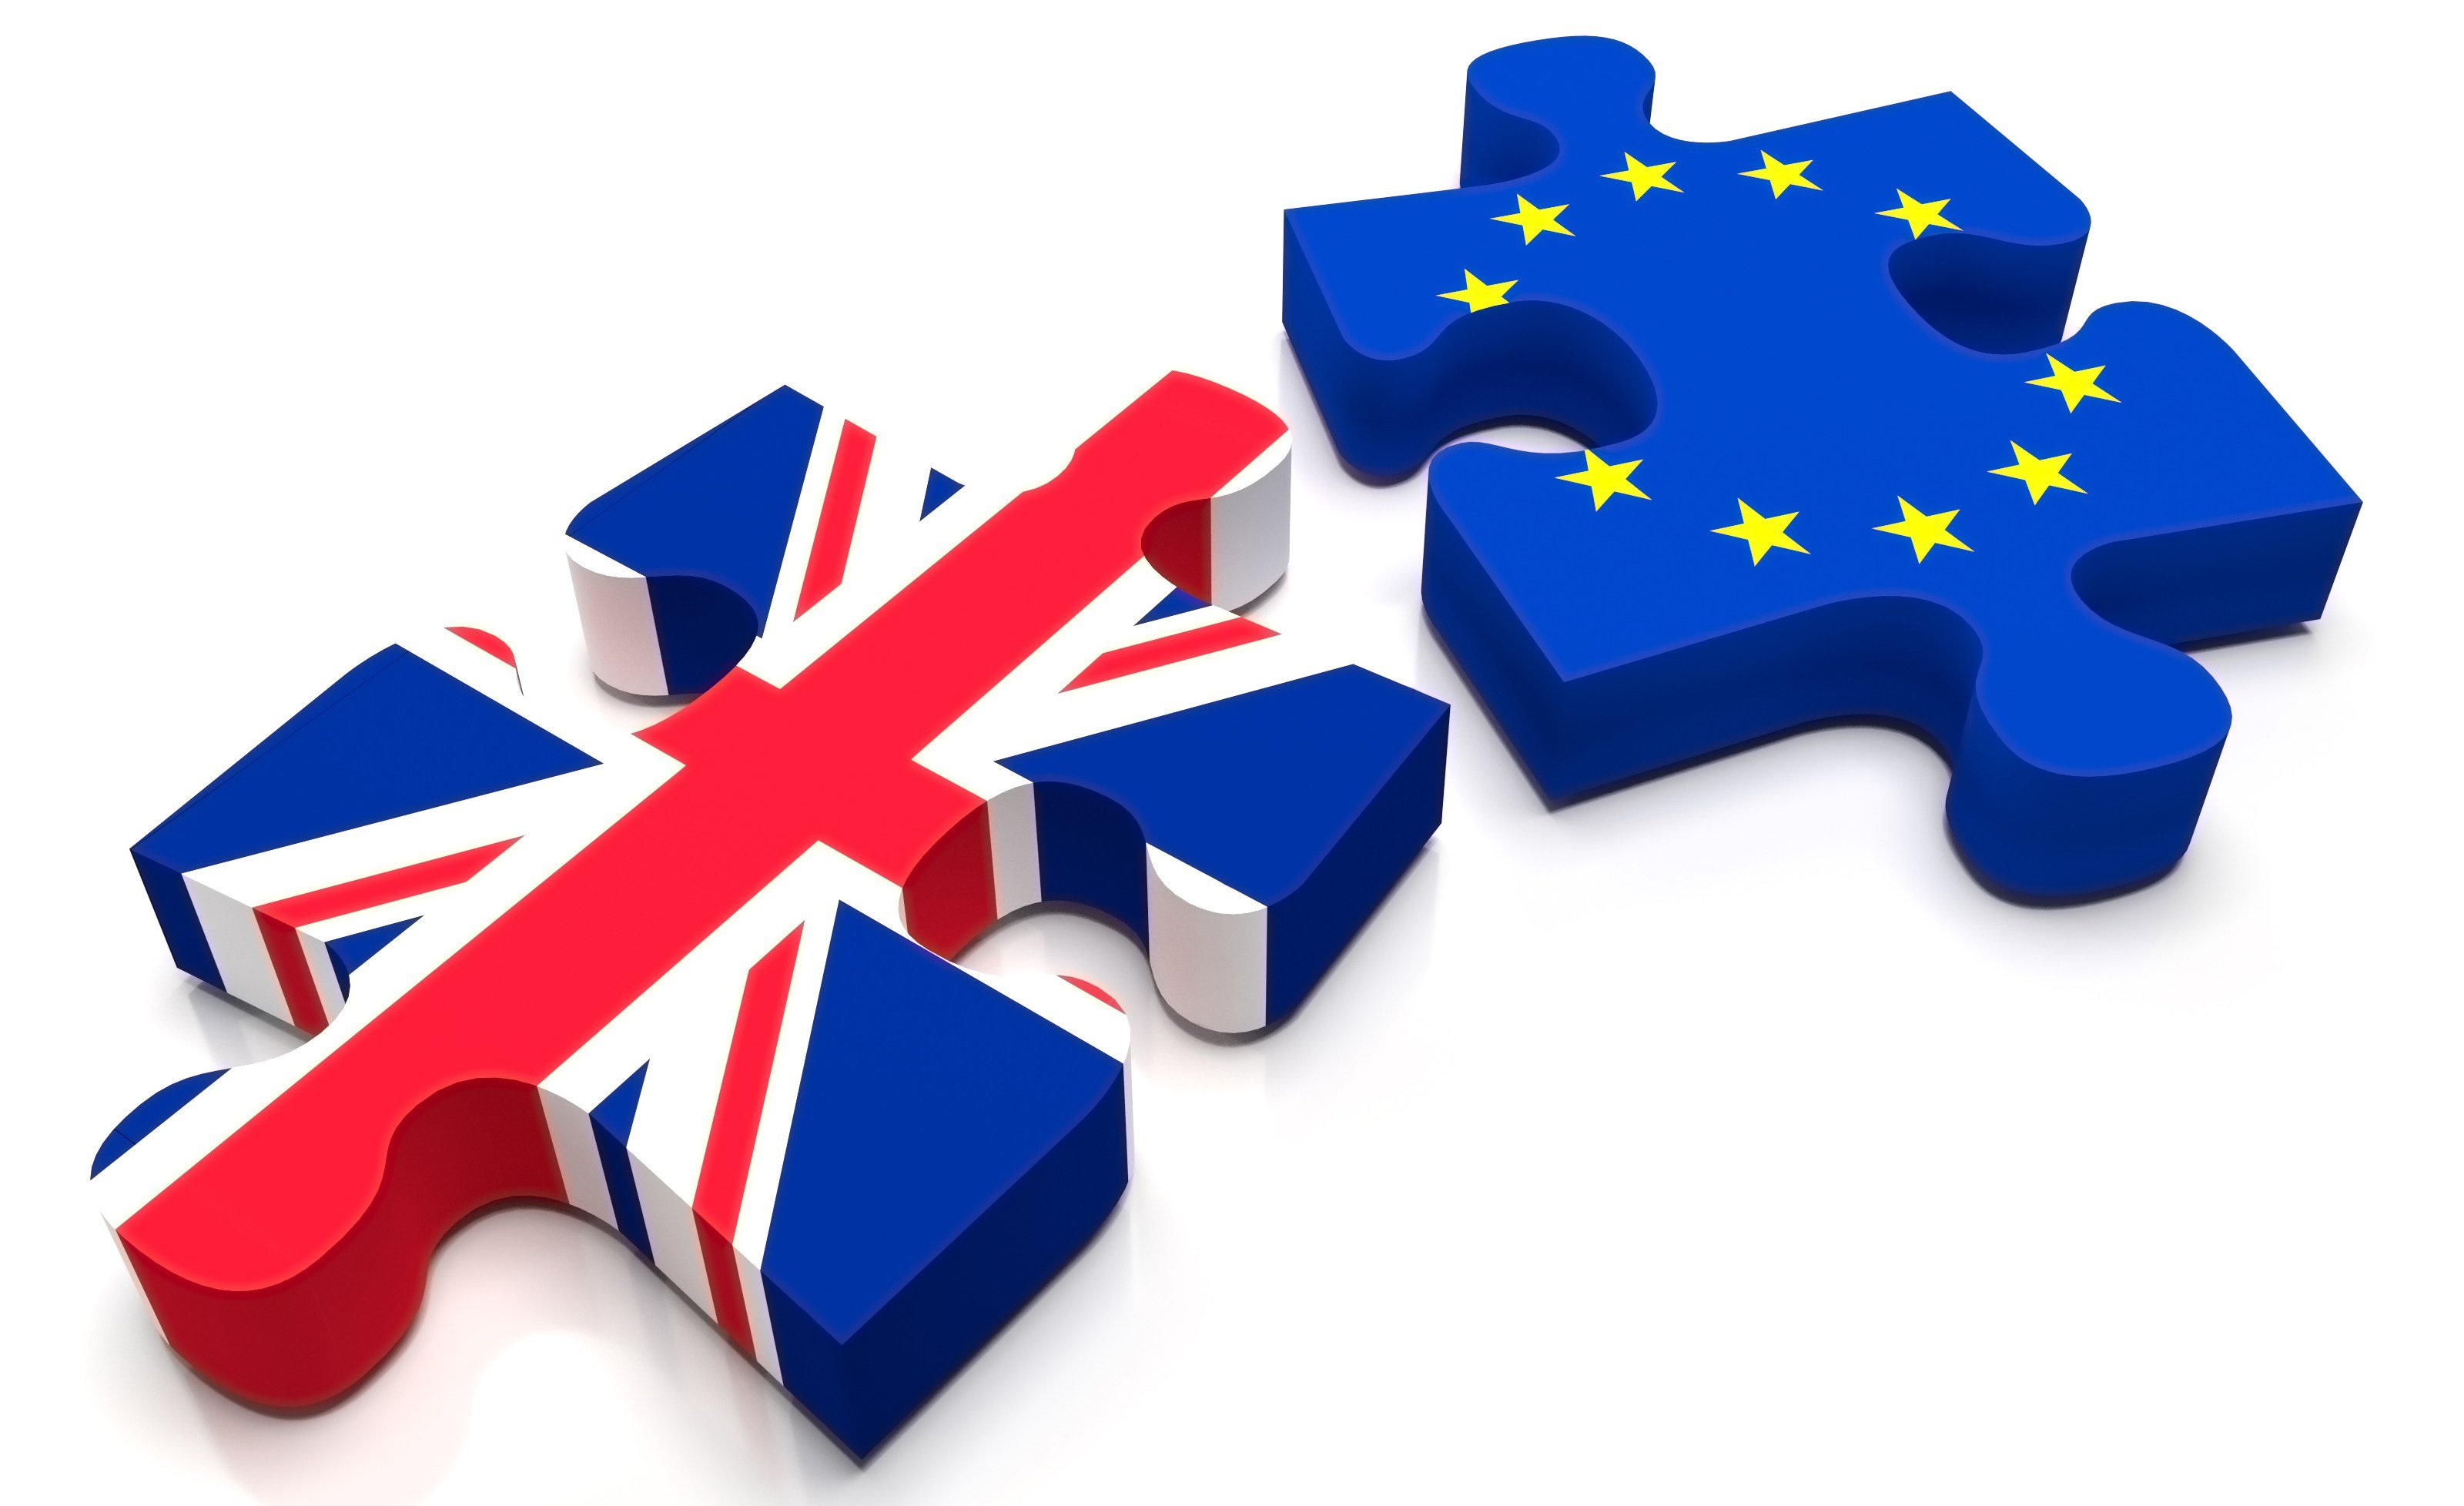 Hotel industry weighs in on Brexit and UK leaving the EU | Hotel Management